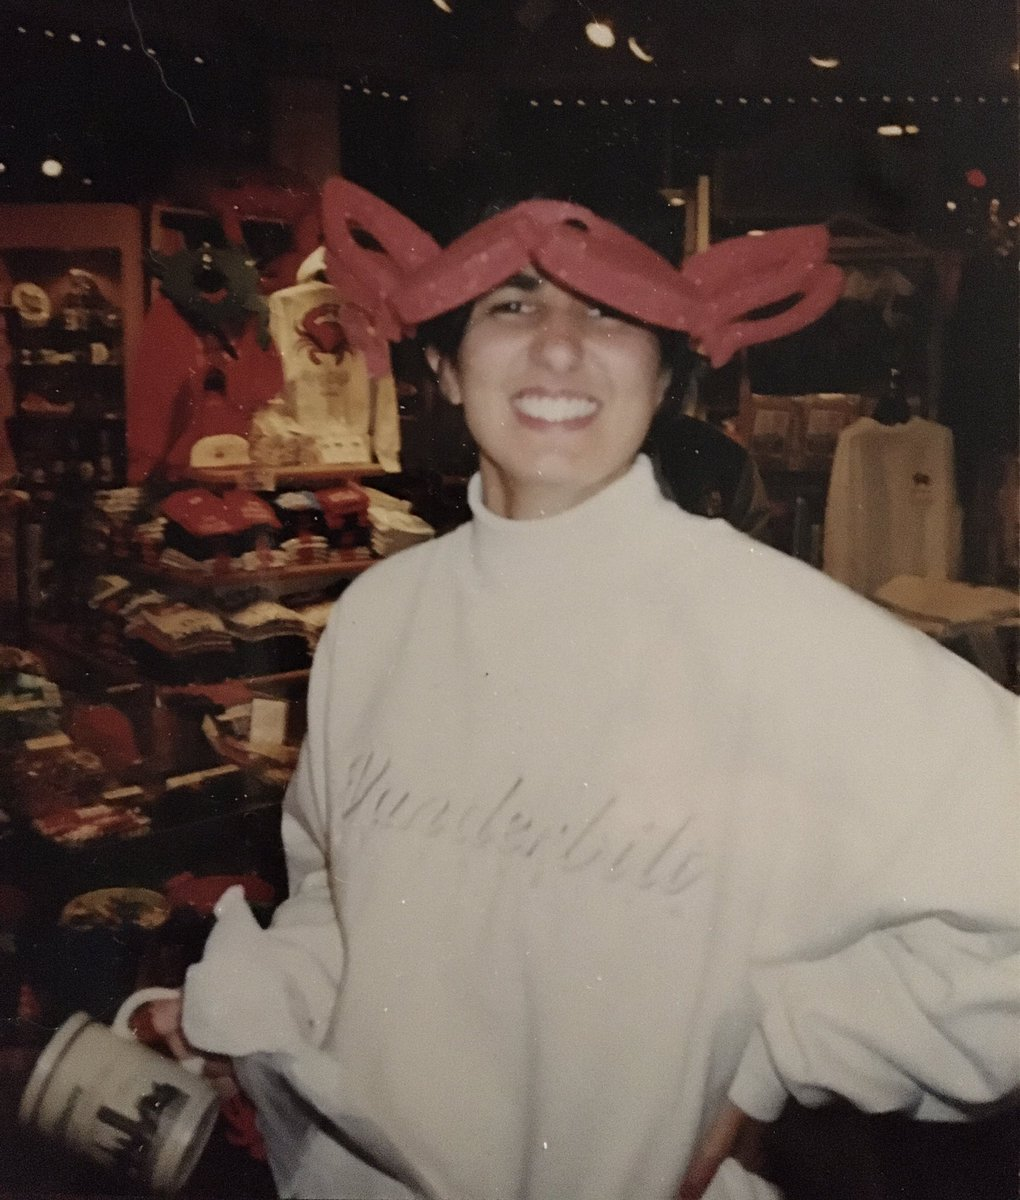 test Twitter Media - ASHG 1997 in Baltimore.  My second @GeneticsSociety meeting, back when I was still excited about conference hotel gift shops.  #ASHG20 #ASHGMemories https://t.co/1NpCeCyeLU